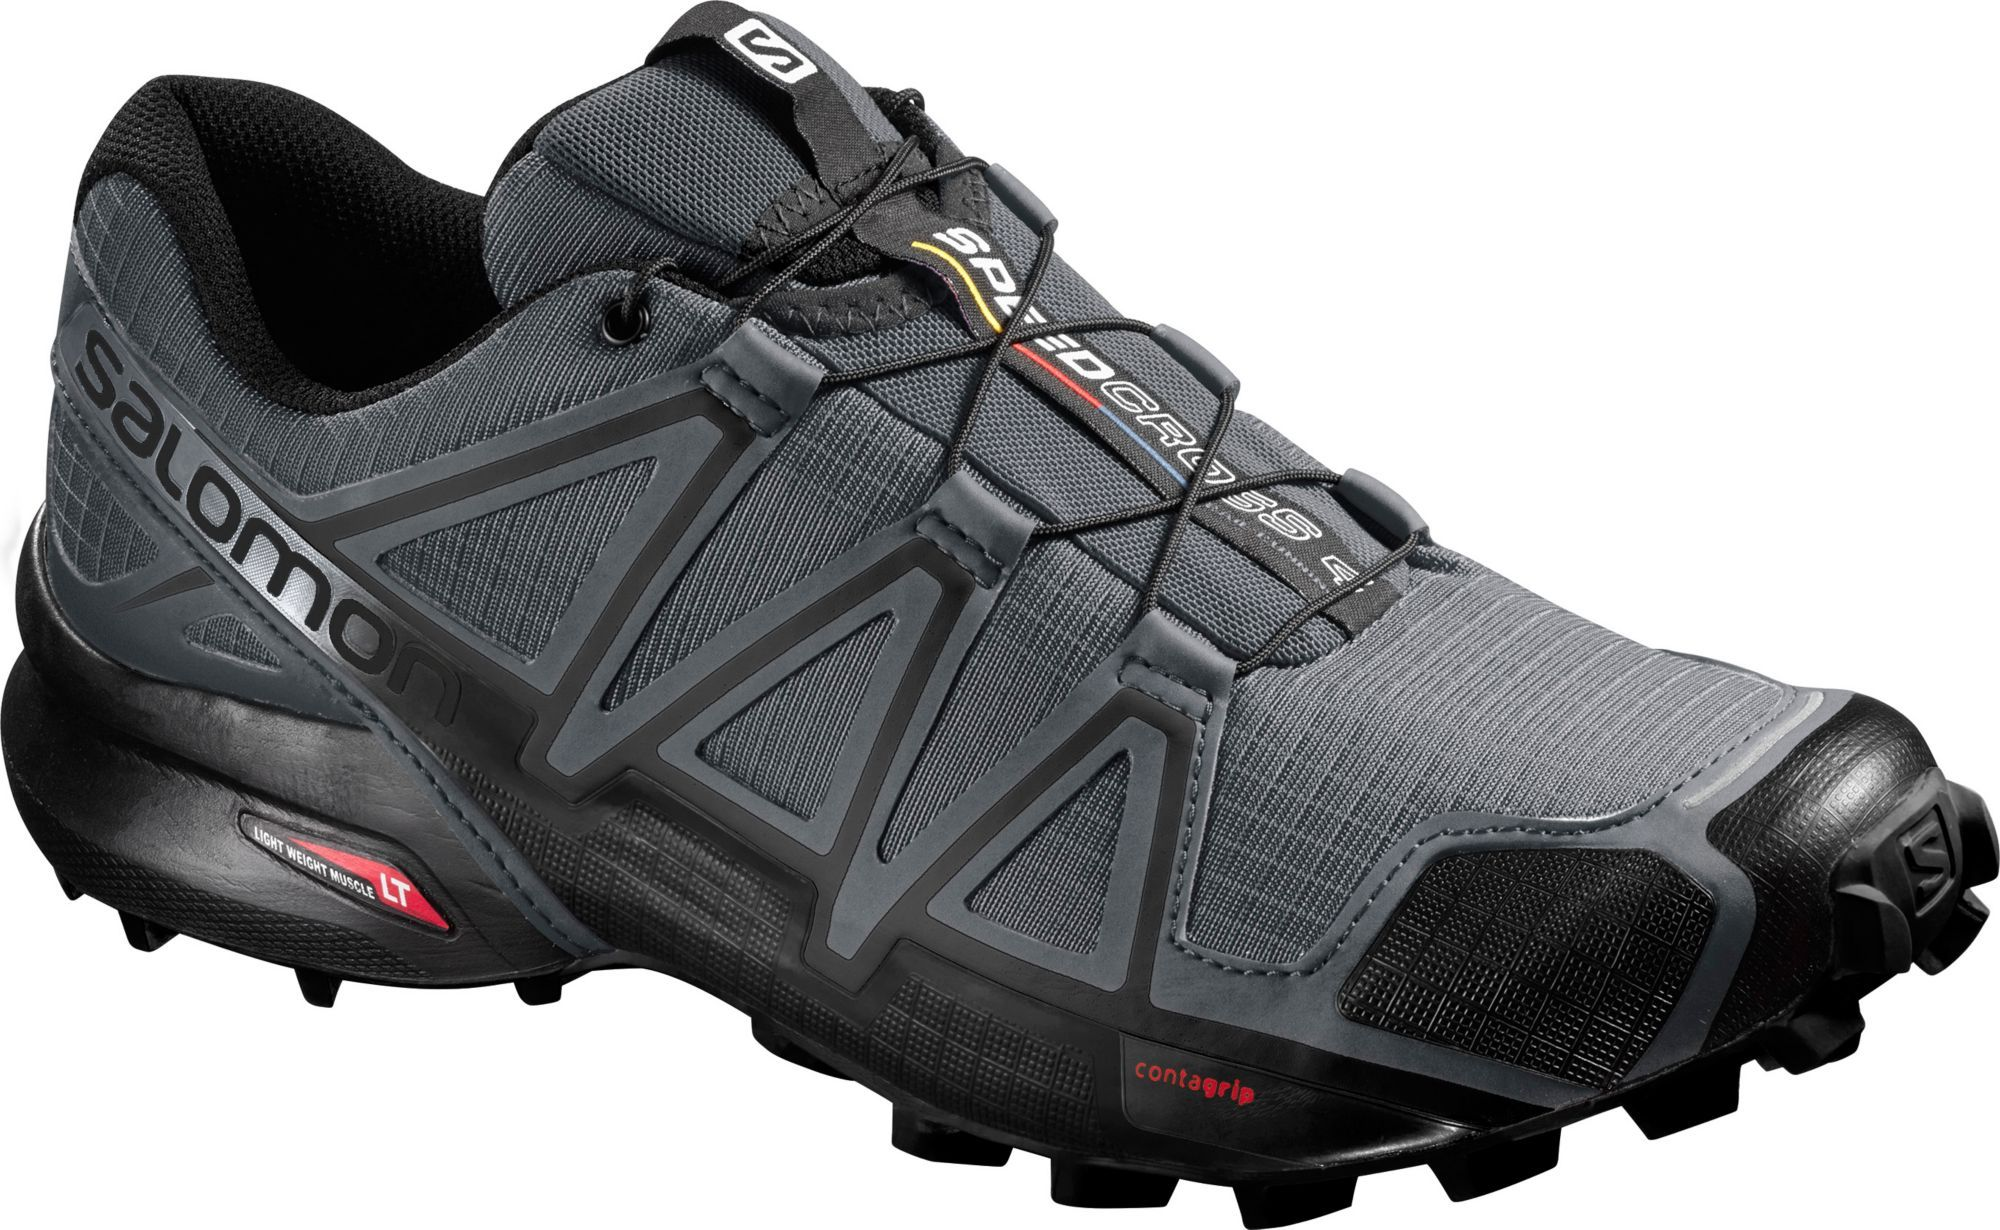 942c176aaba Salomon Men's Speedcross 4 Trail Running Shoes | Products | Trail ...